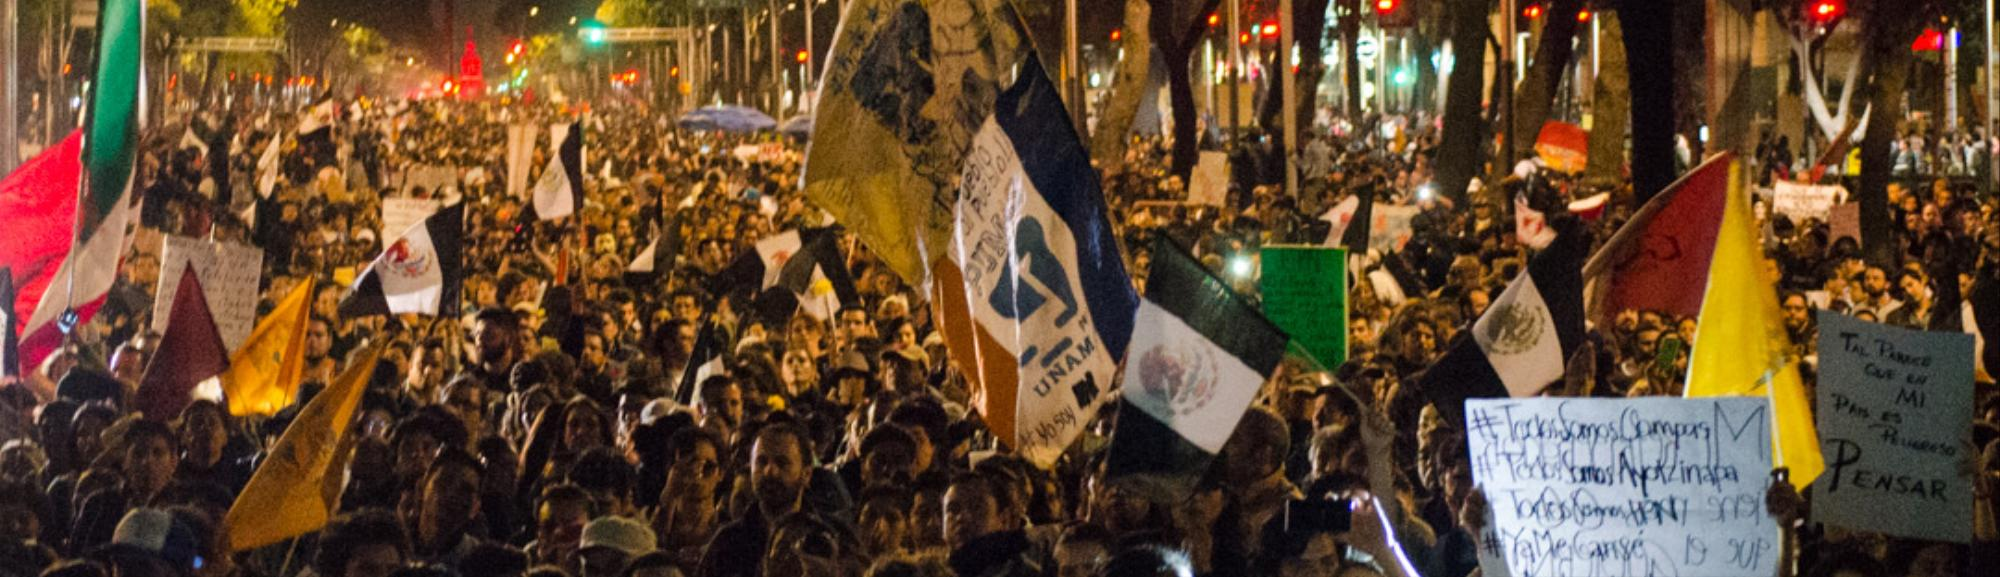 Plainclothes Police Officers Are Rioting in Mexico City Protests, Videos Show